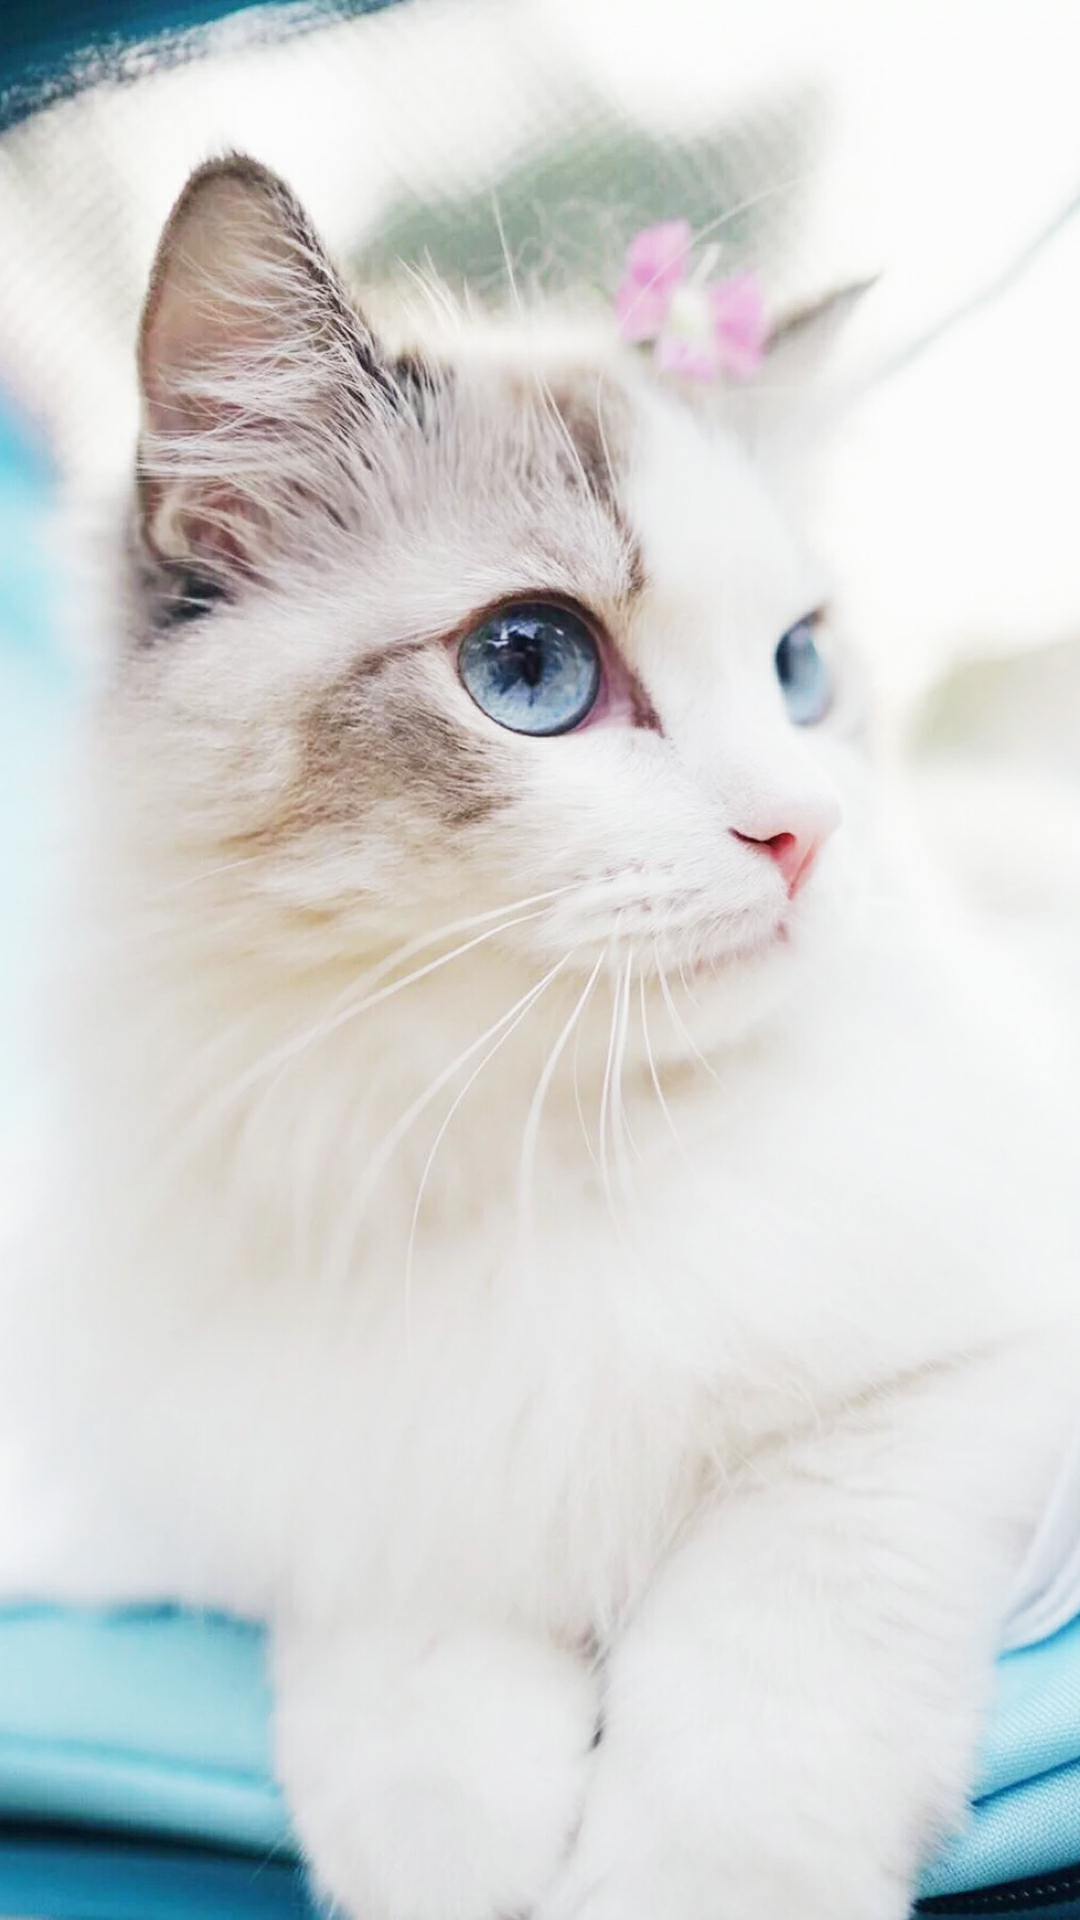 Cute Cat Wallpaper Posted By Ethan Cunningham